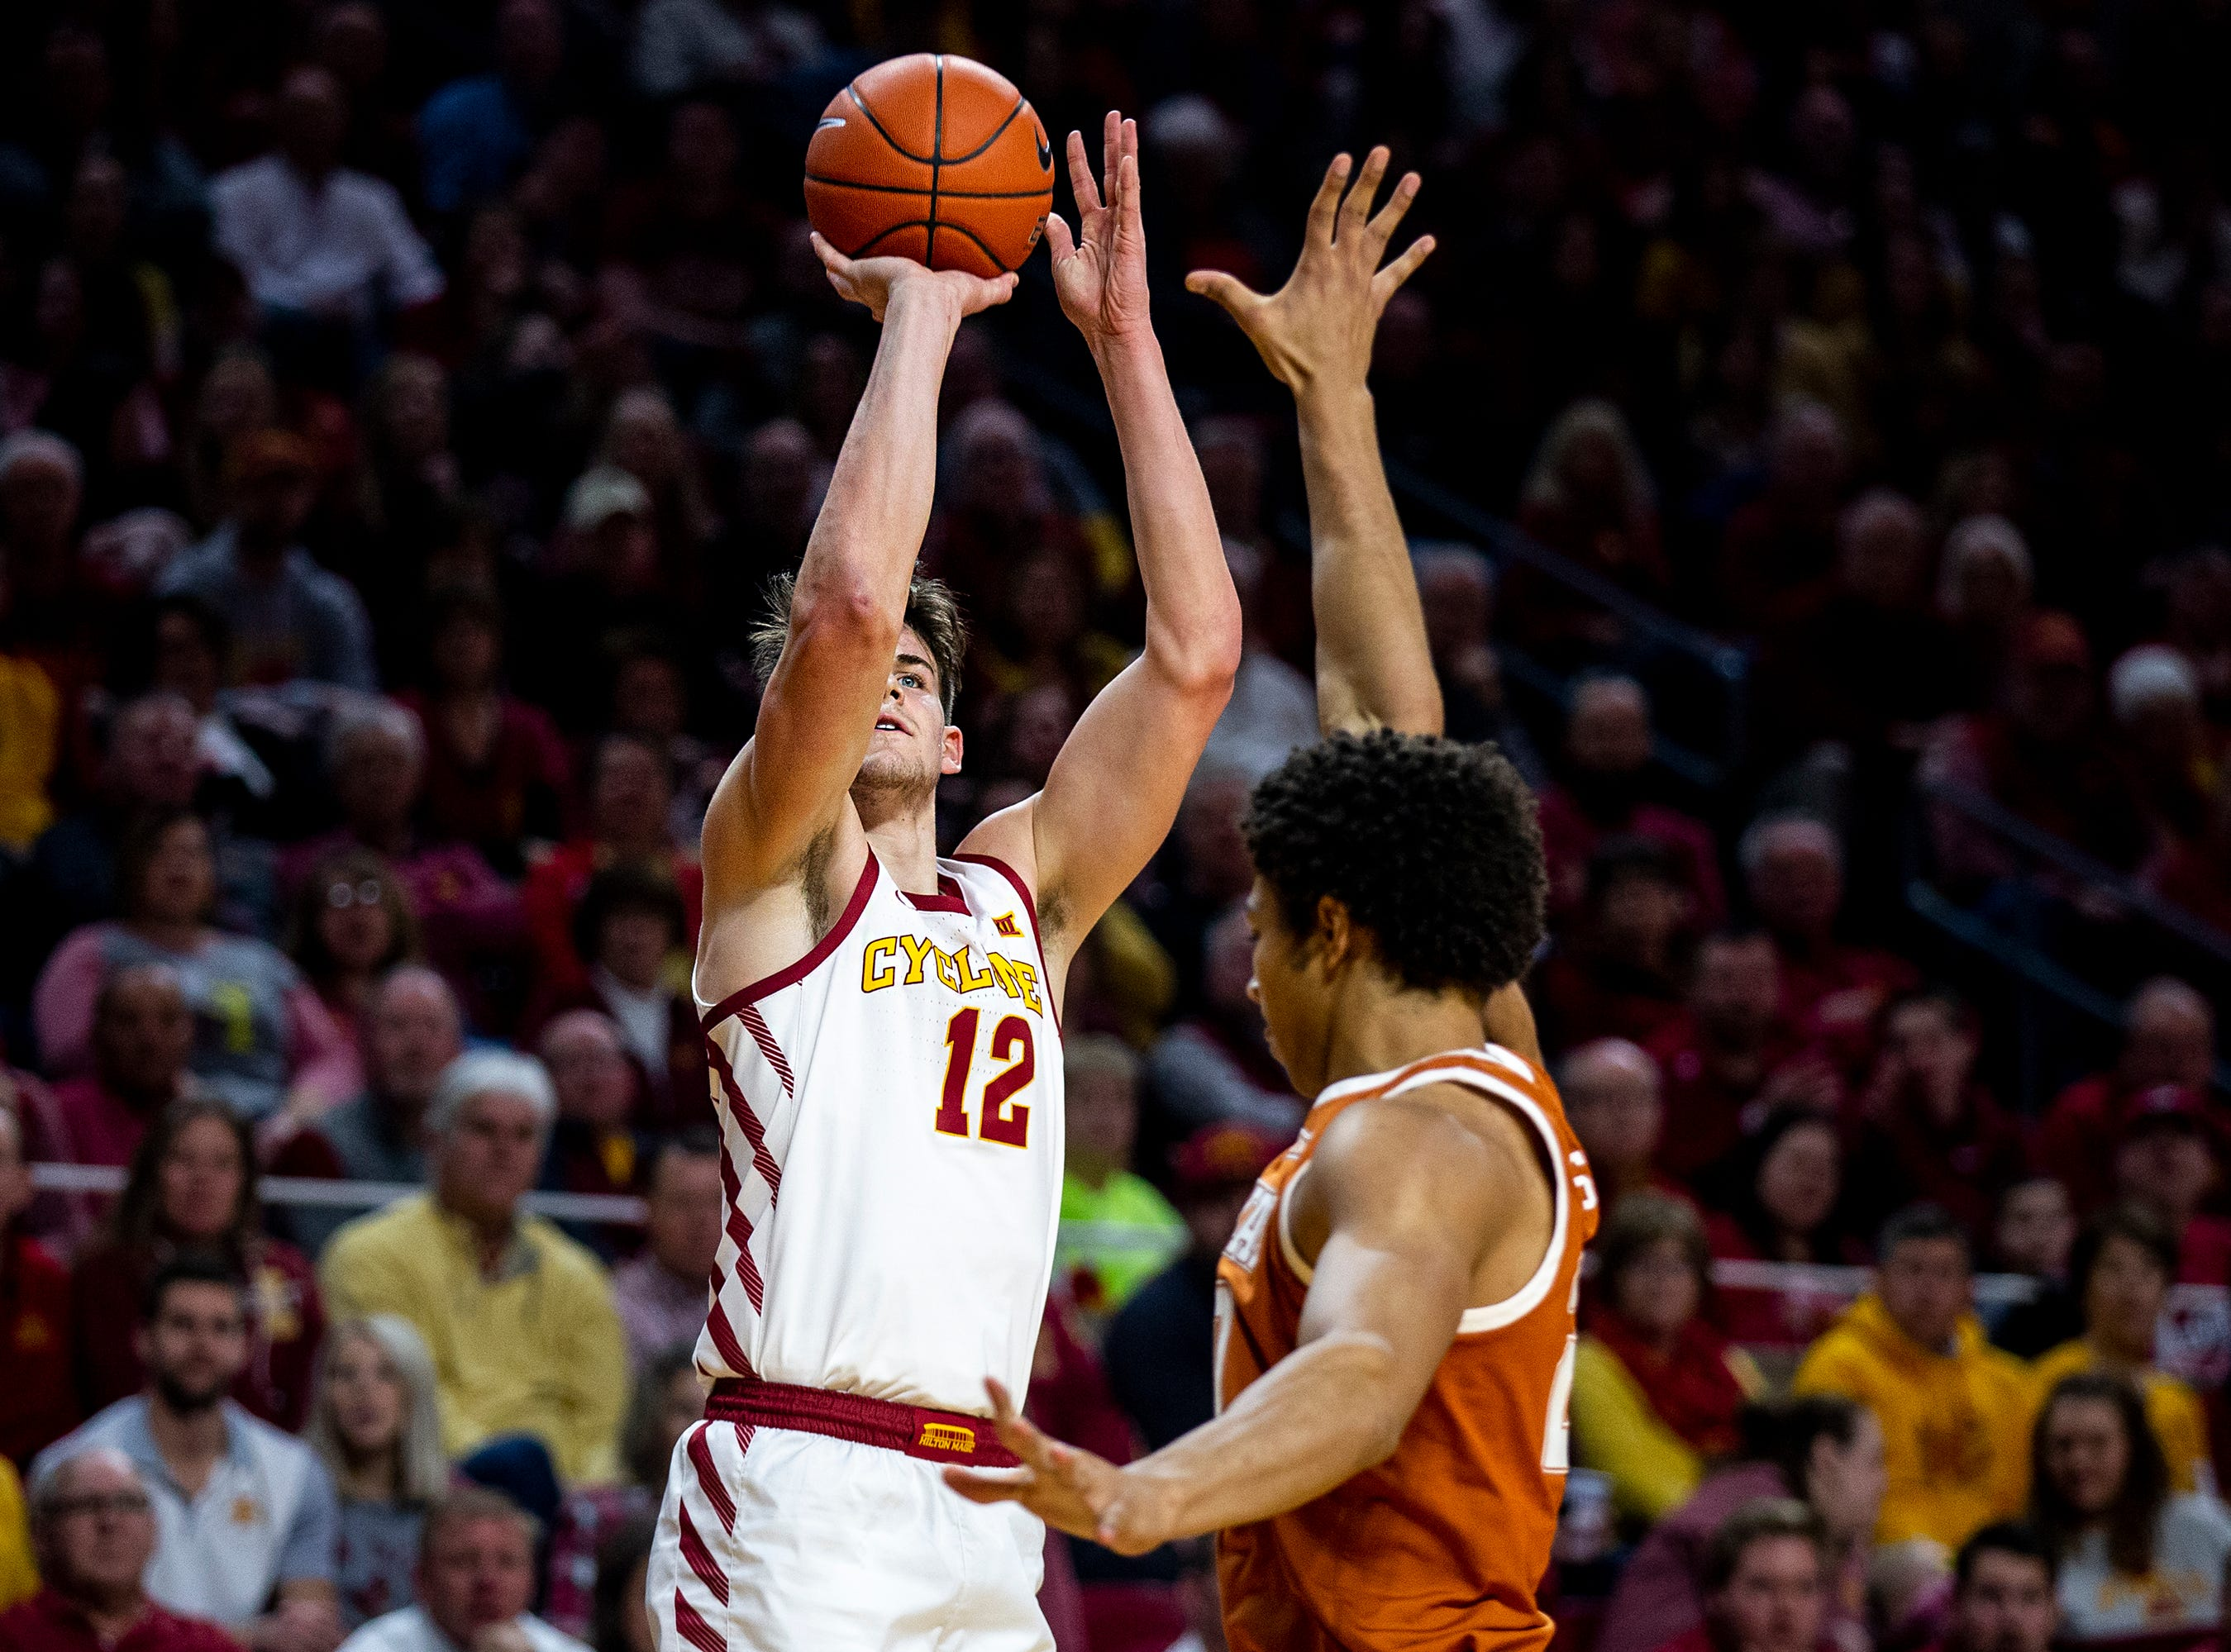 Iowa State's Michael Jacobson shoots a three-pointer during the Iowa State men's basketball game against Texas on Saturday, Feb. 2, 2019, in Hilton Coliseum.